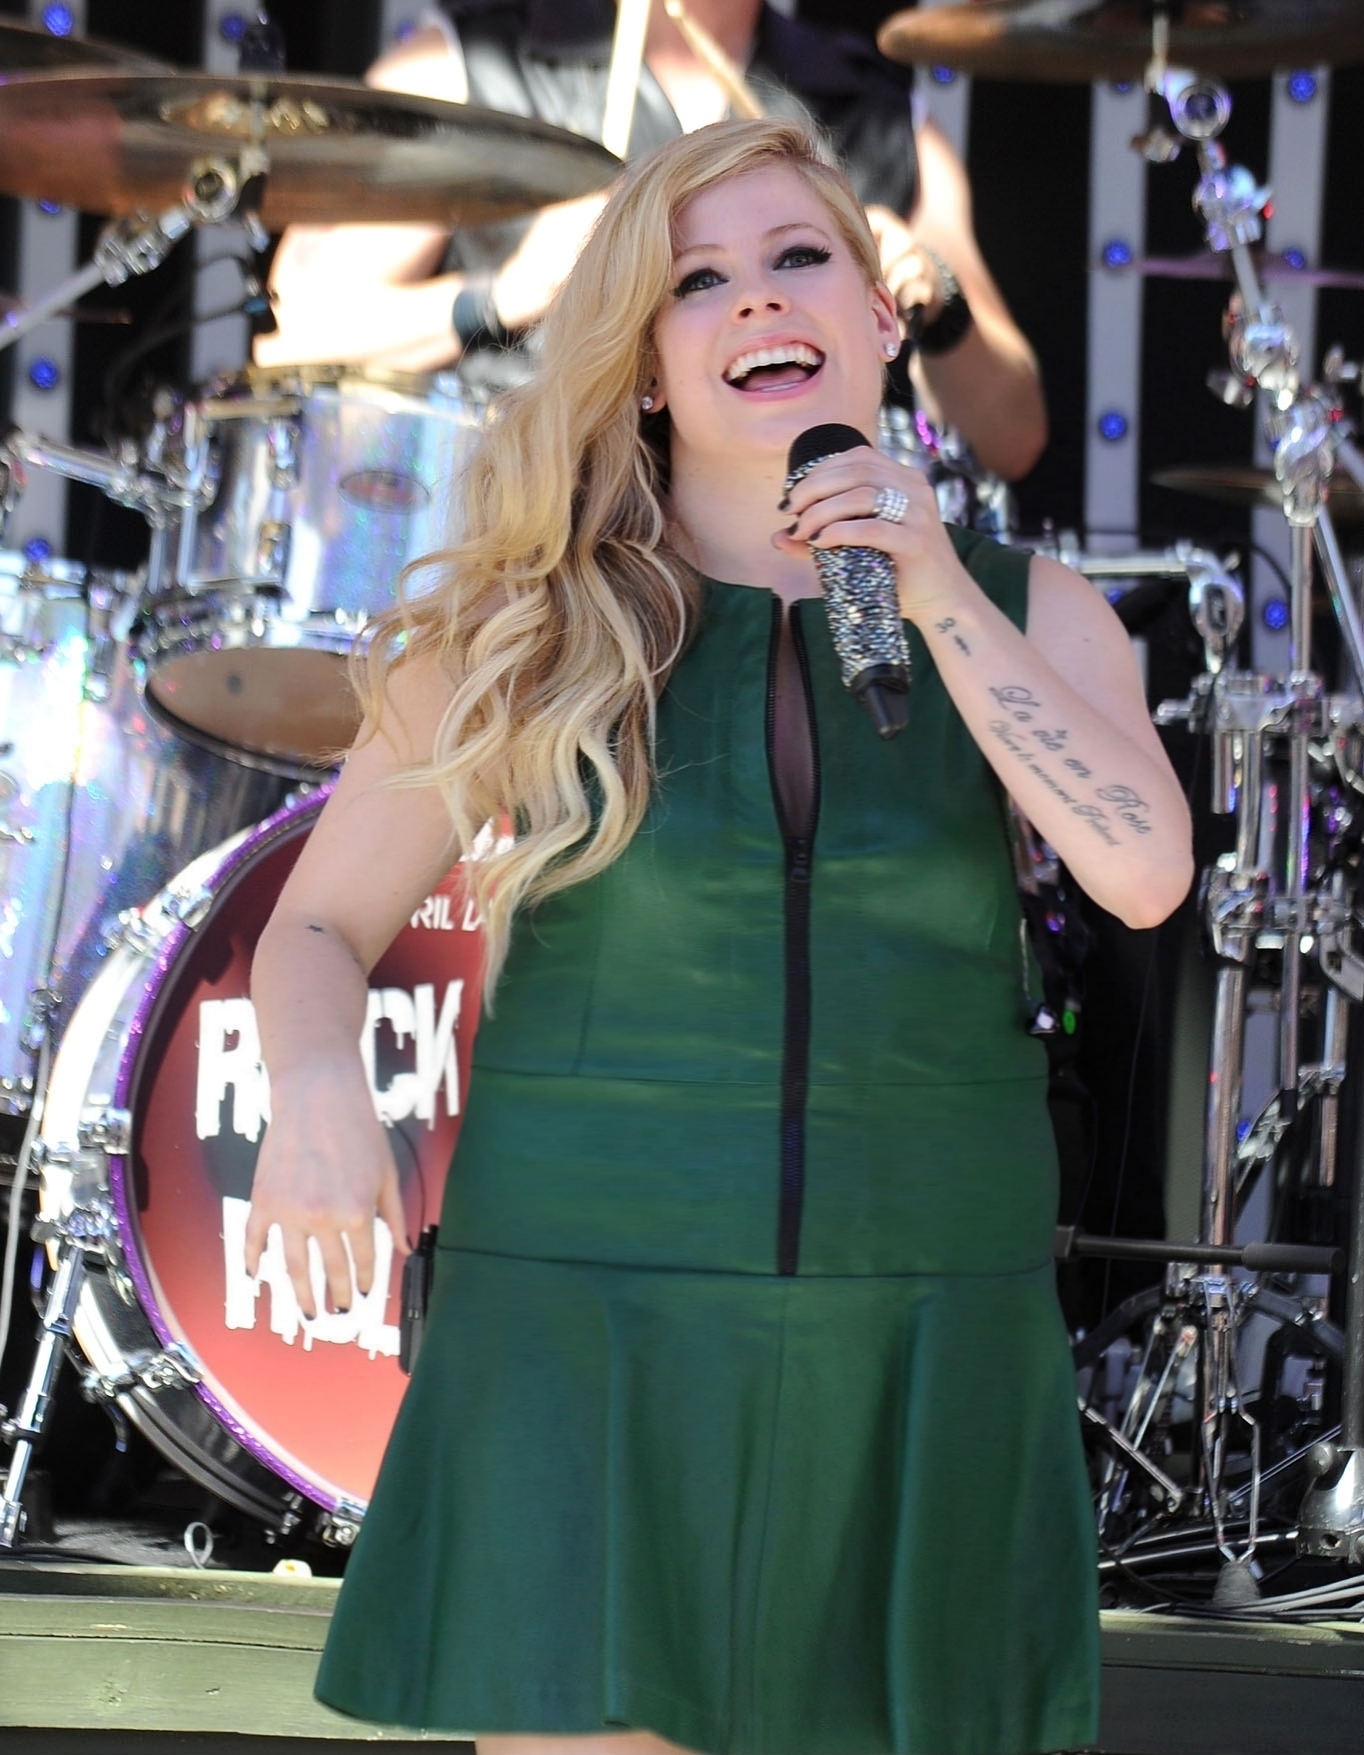 lavigne is chubby Avril getting